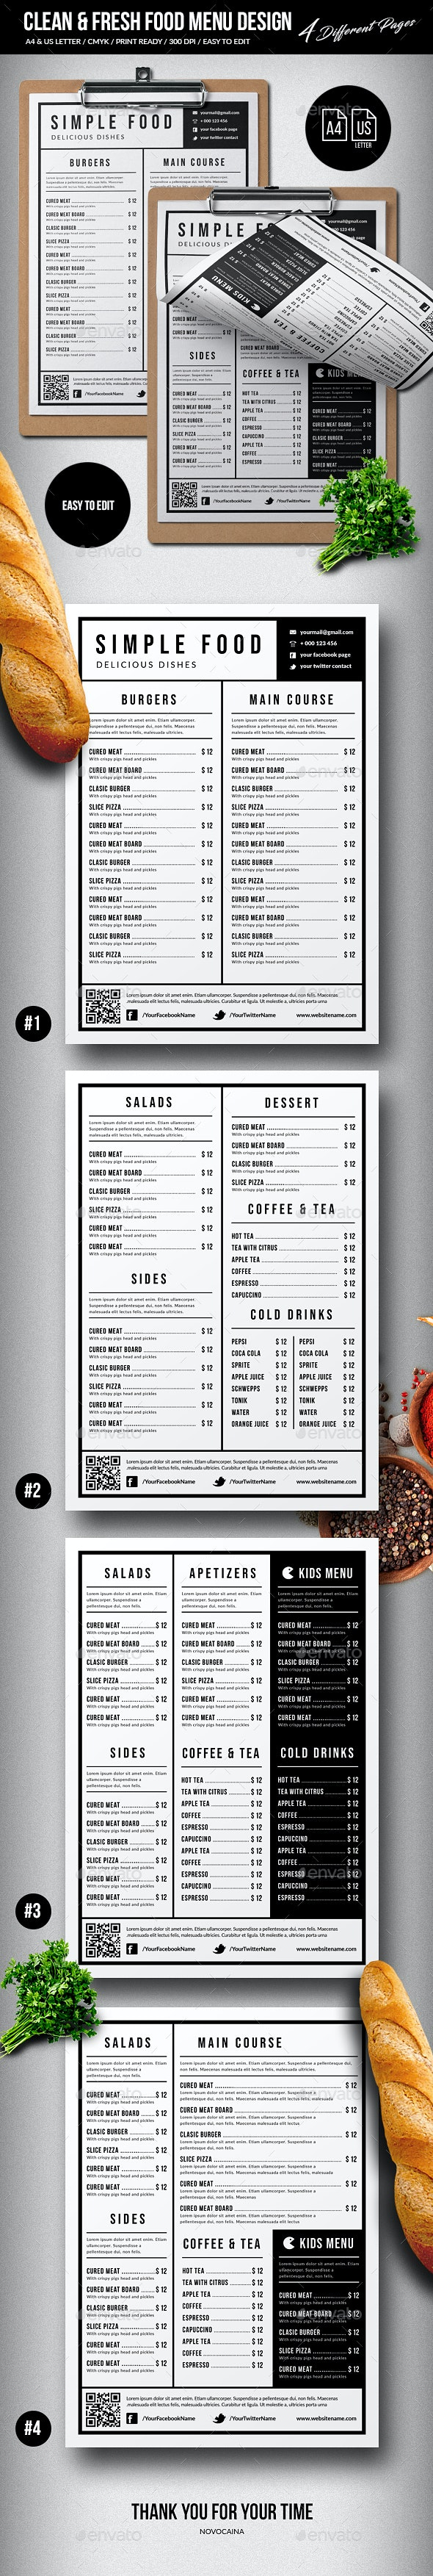 Clean & Fresh Single Page Menu - 4 Pages - A4 & US Letter - Food Menus Print Templates